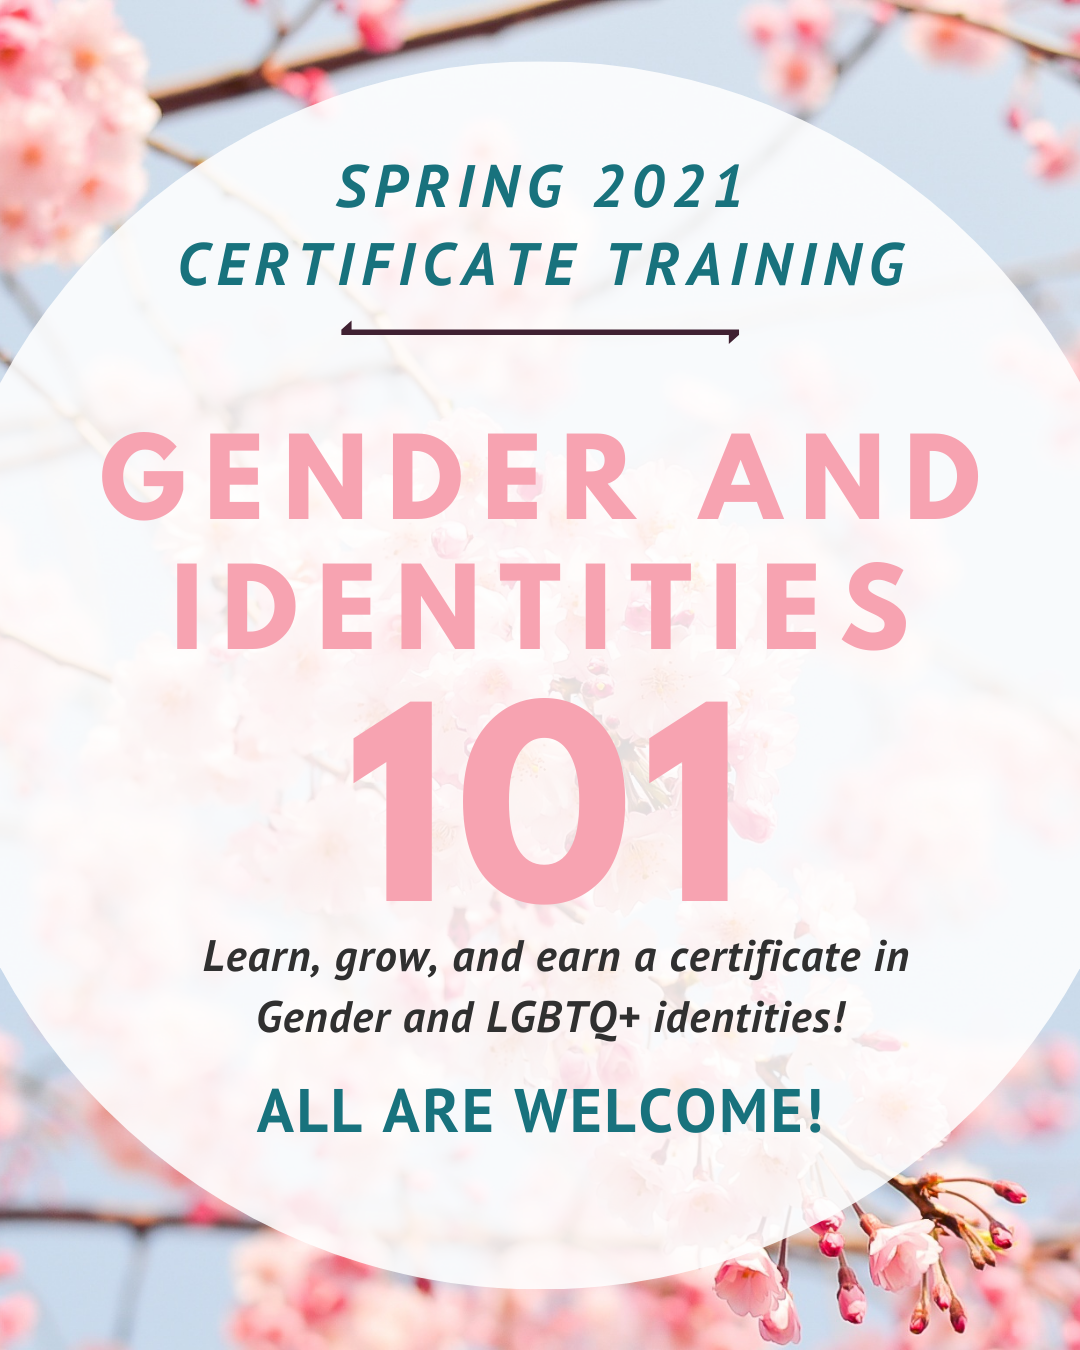 Gender and identities 101